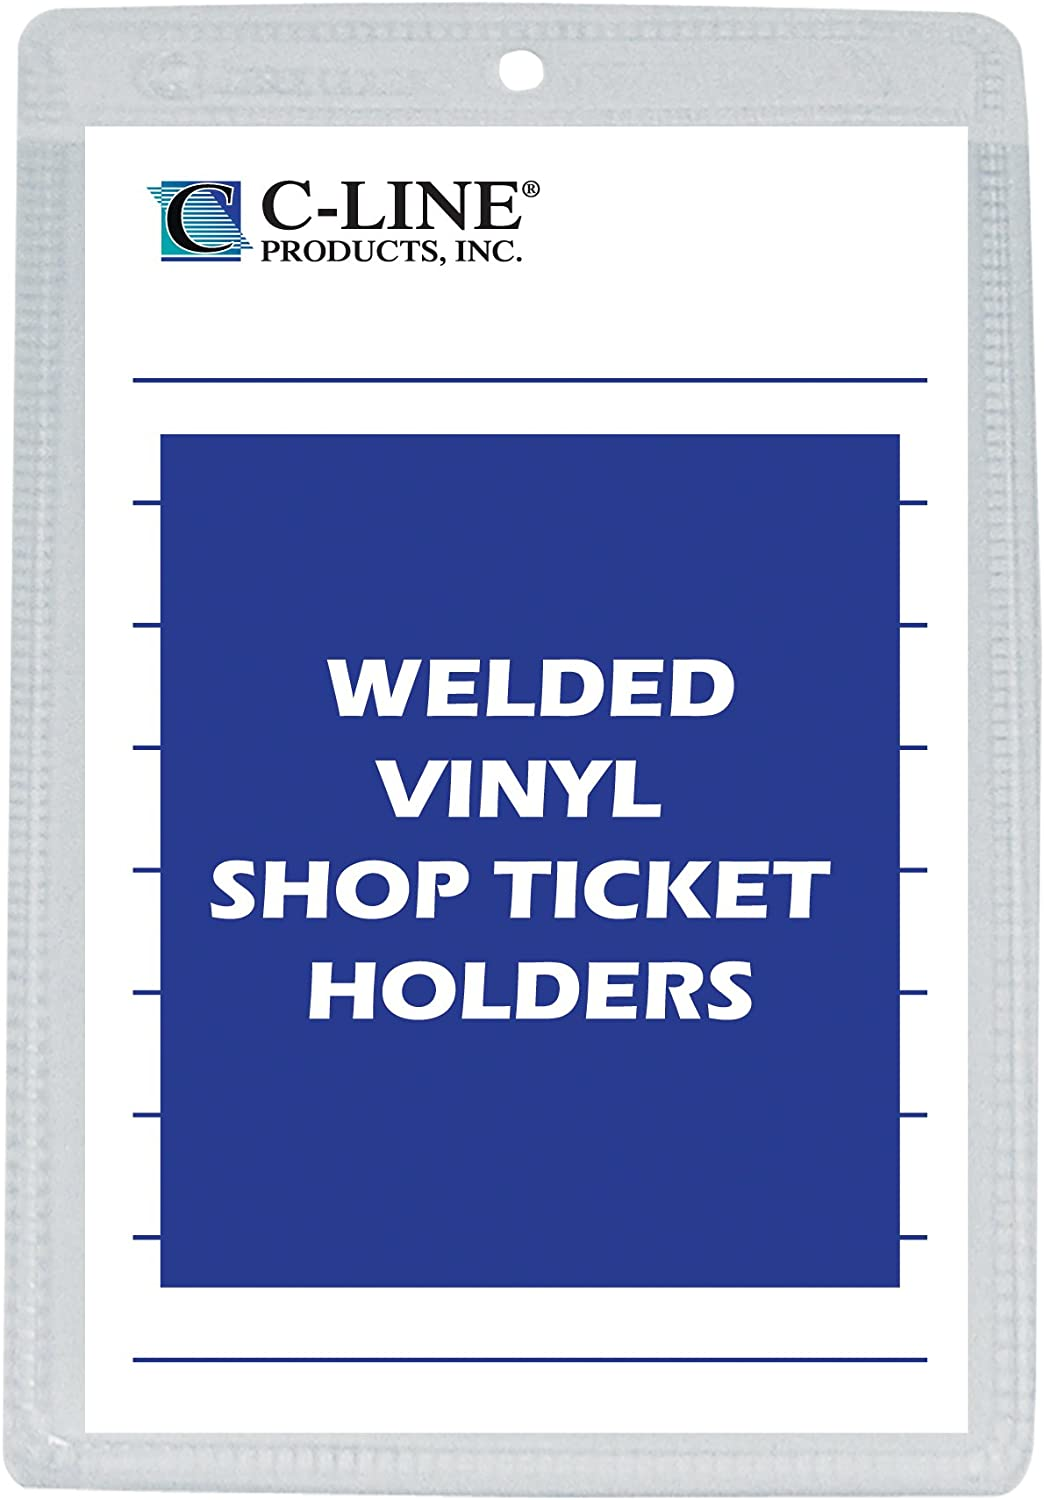 C-Line Vinyl Shop Ticket Holders, Both Sides Clear, 6 x 9 Inches, 50 per Box (80069)